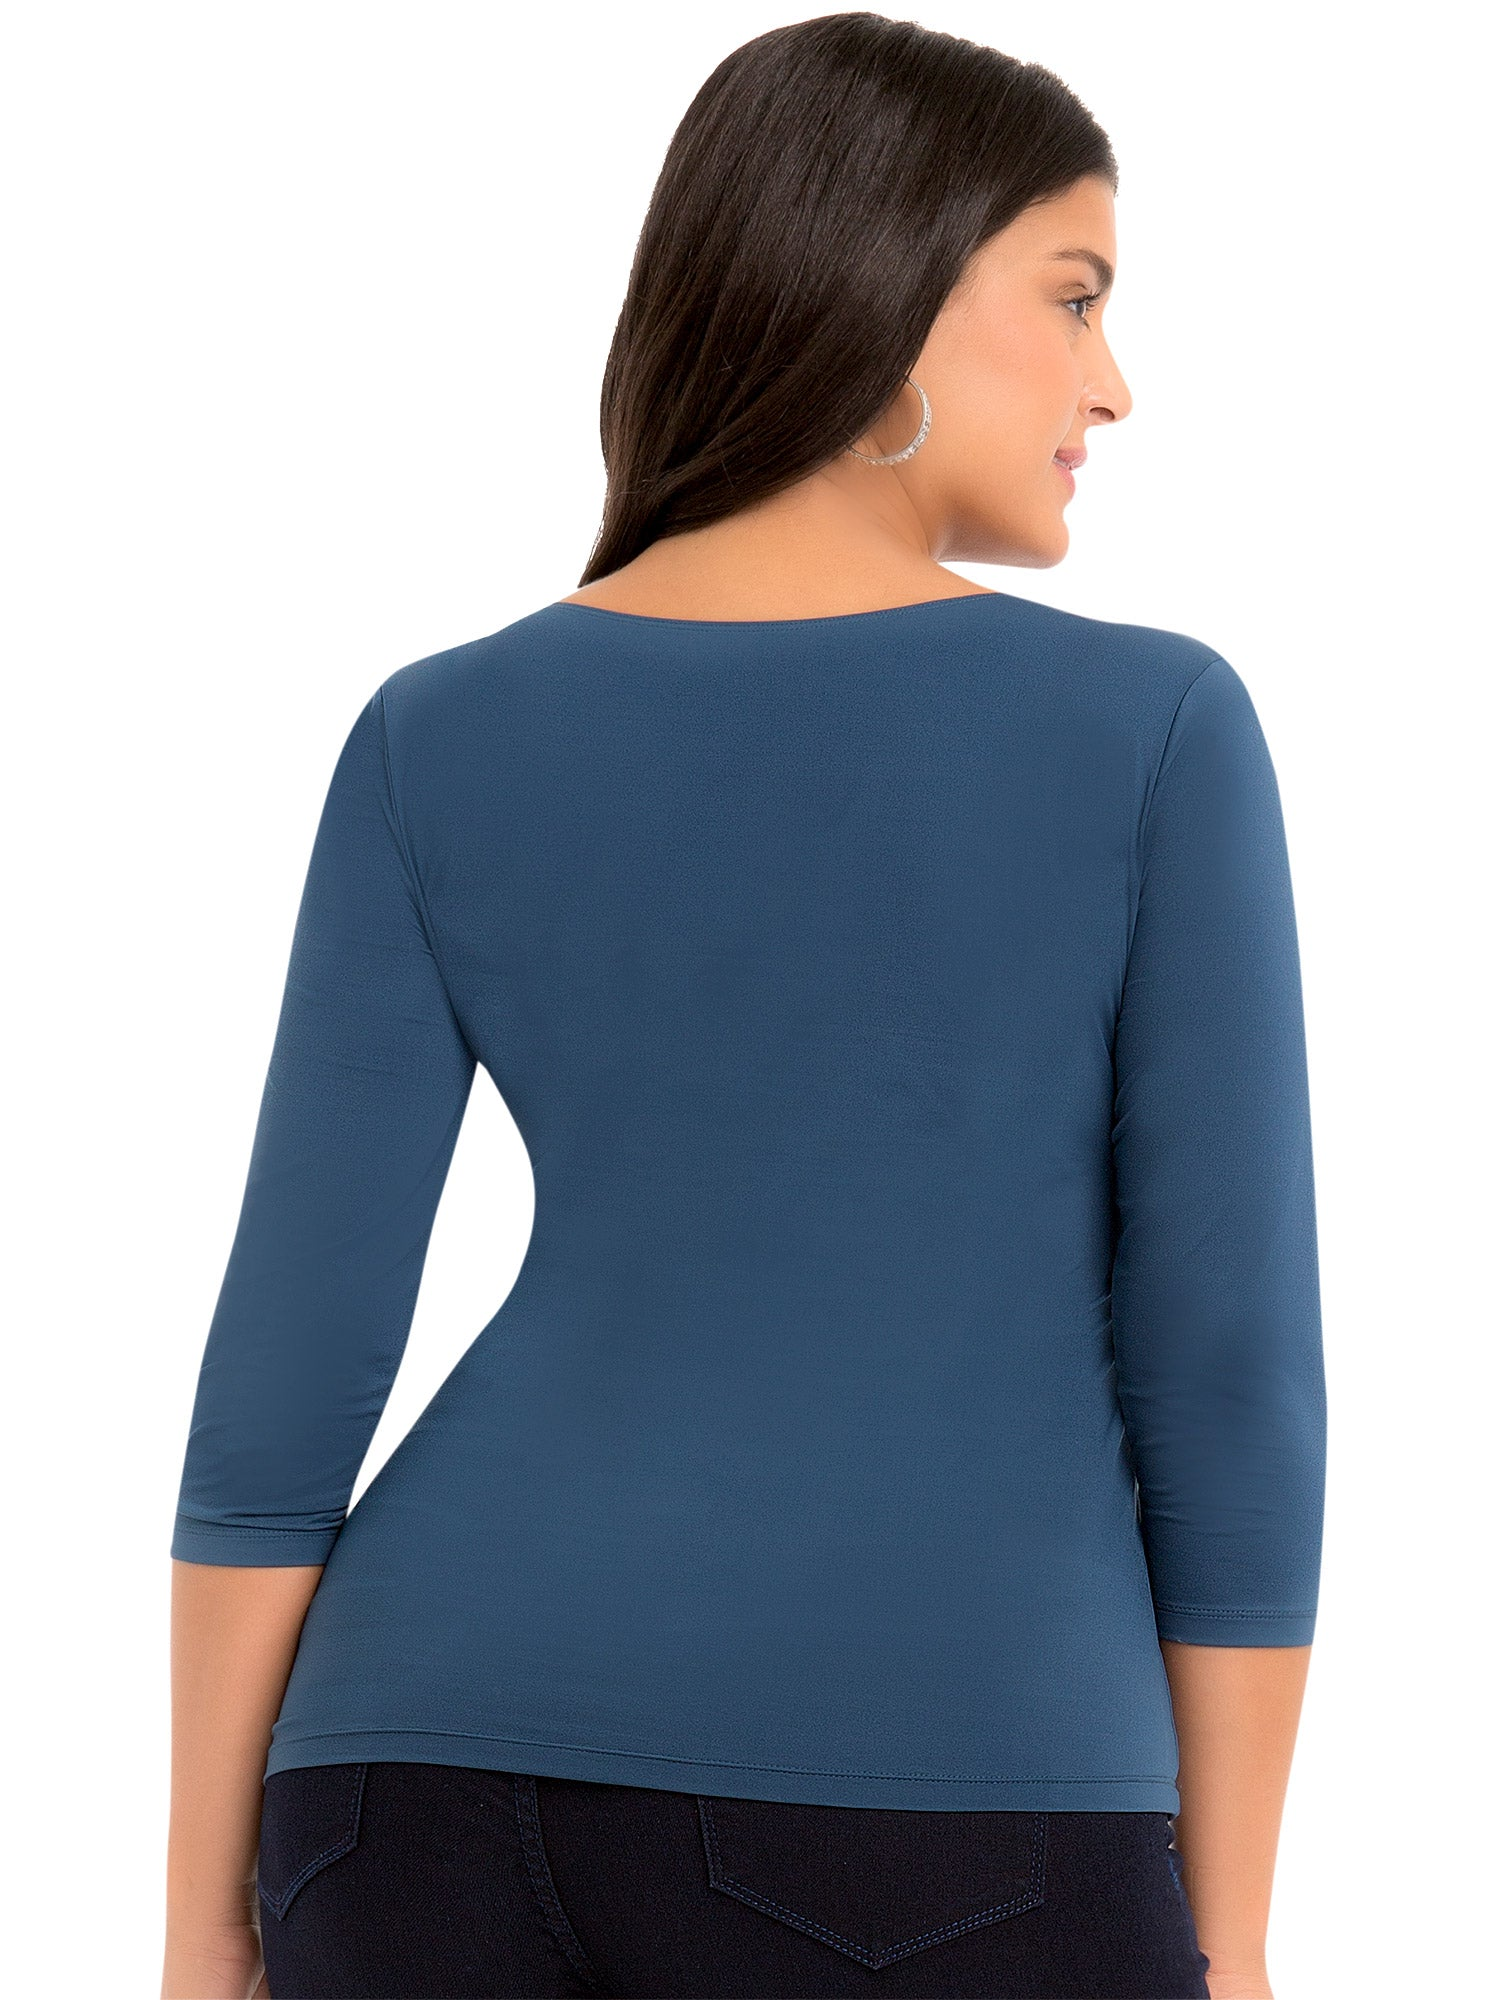 Super Smooth 3/4 Sleeve Top